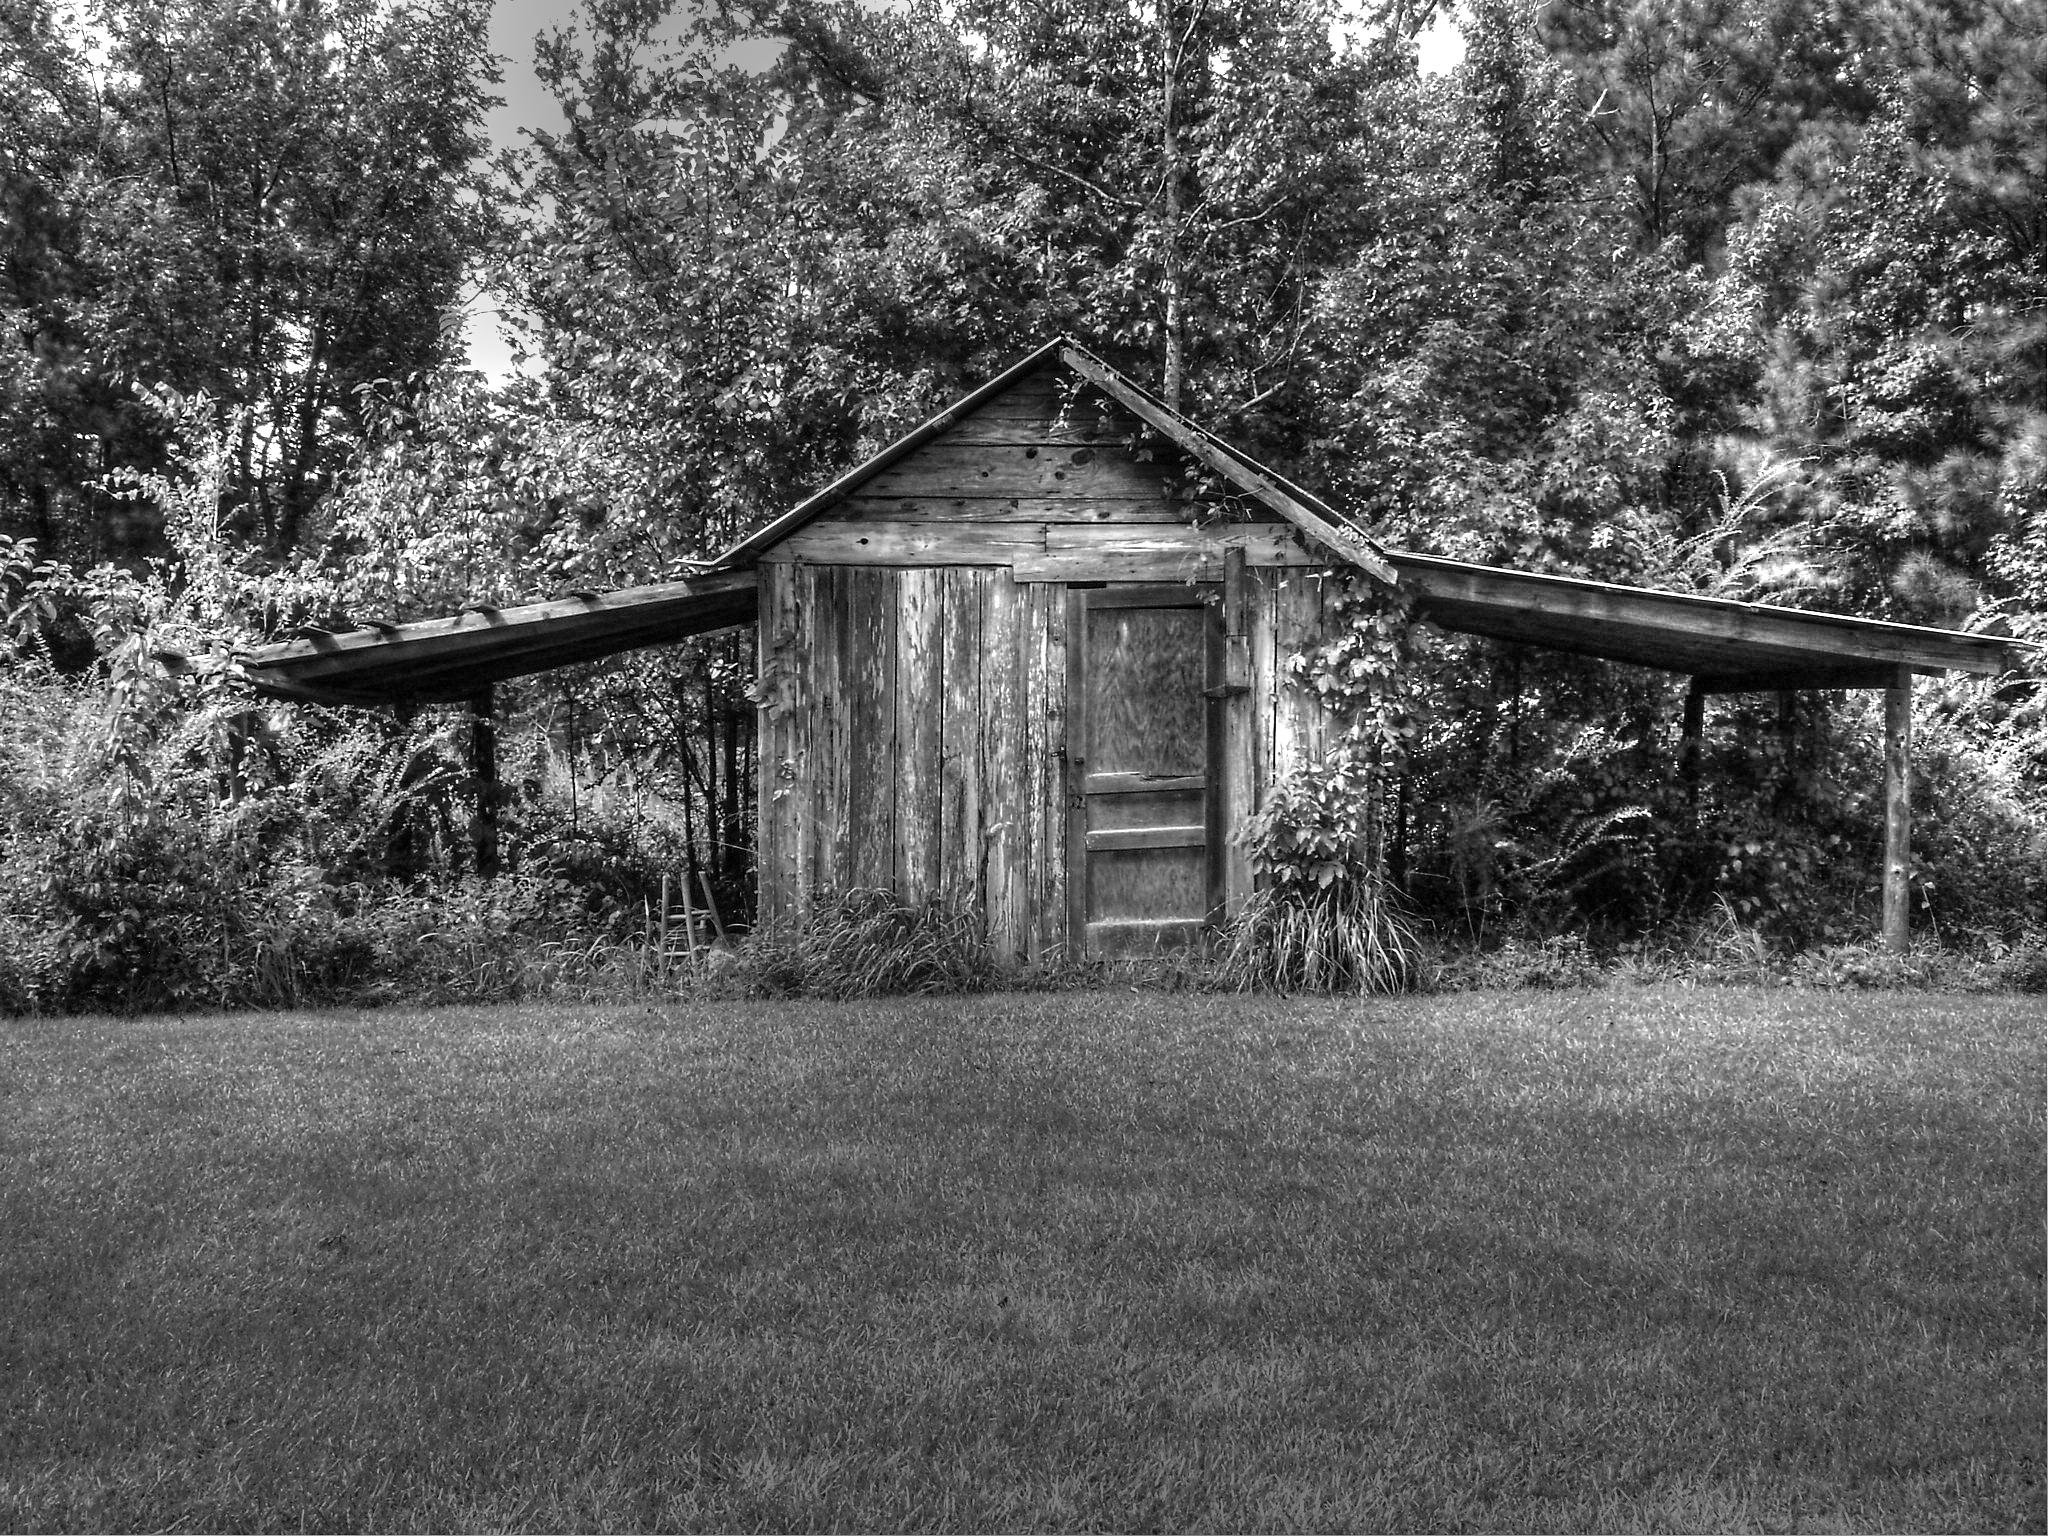 """""""Old South Shed in Alabama"""" by Larry Woodson"""